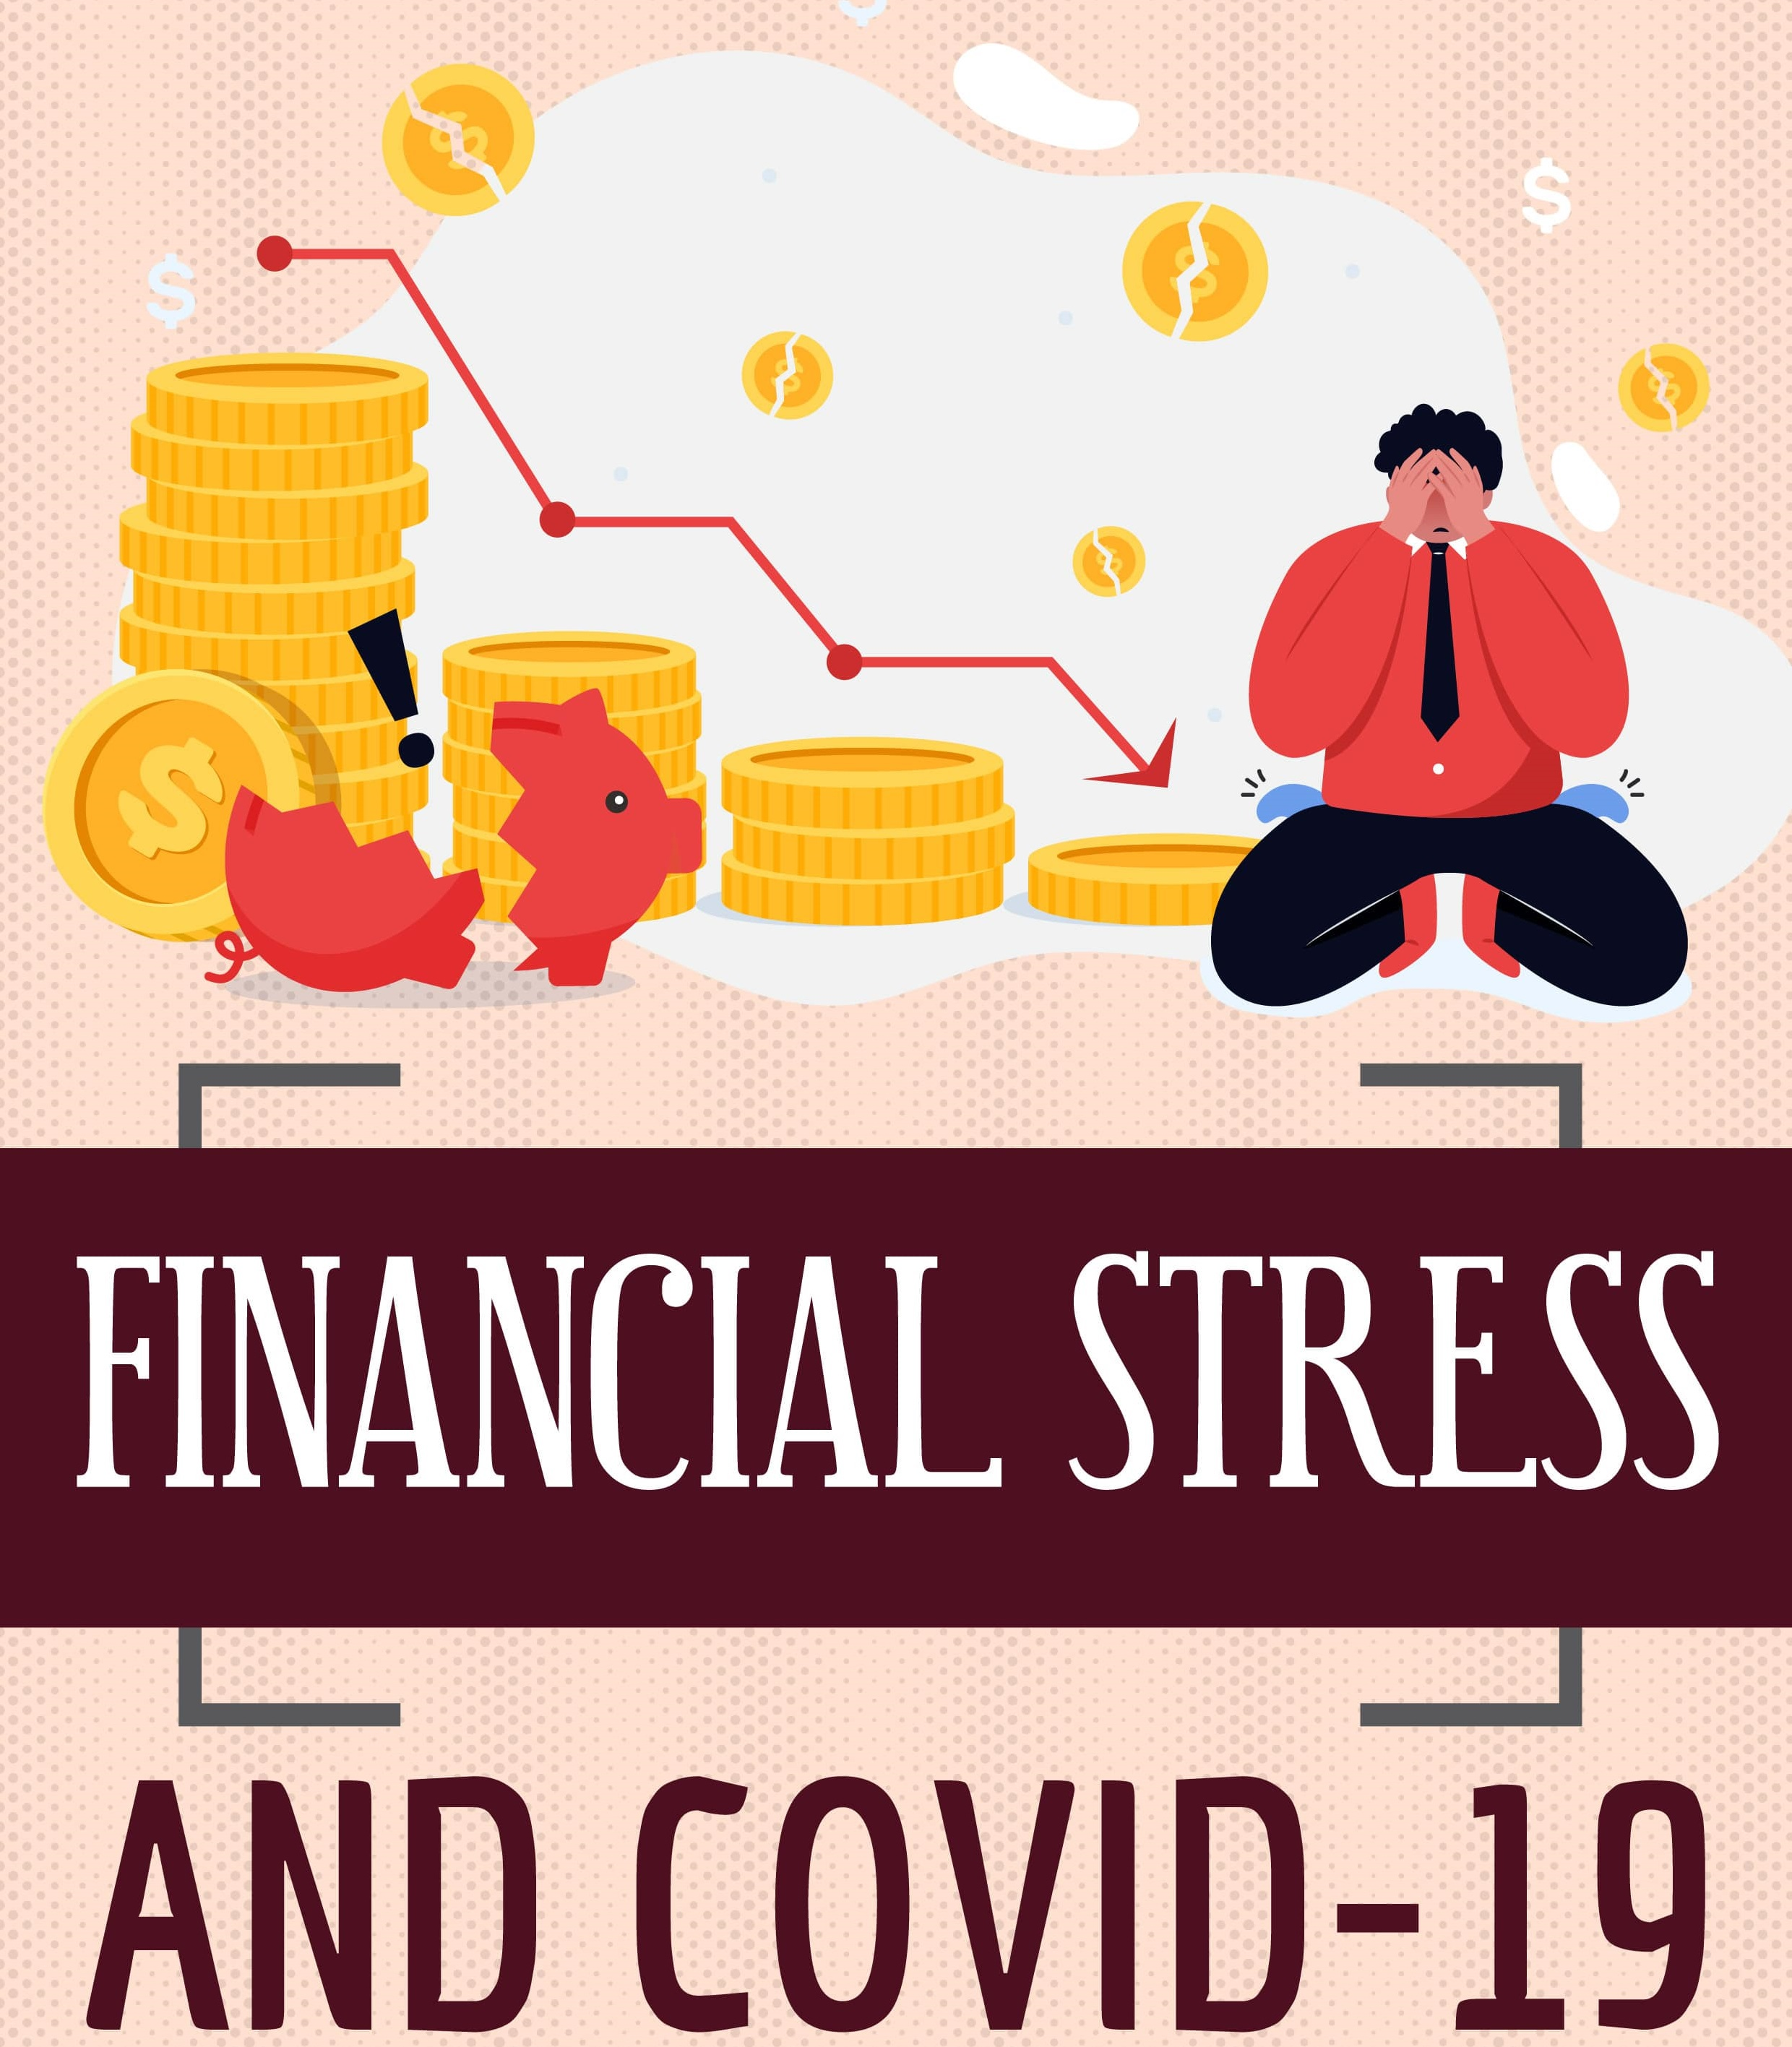 Financial Stress And COVID-19